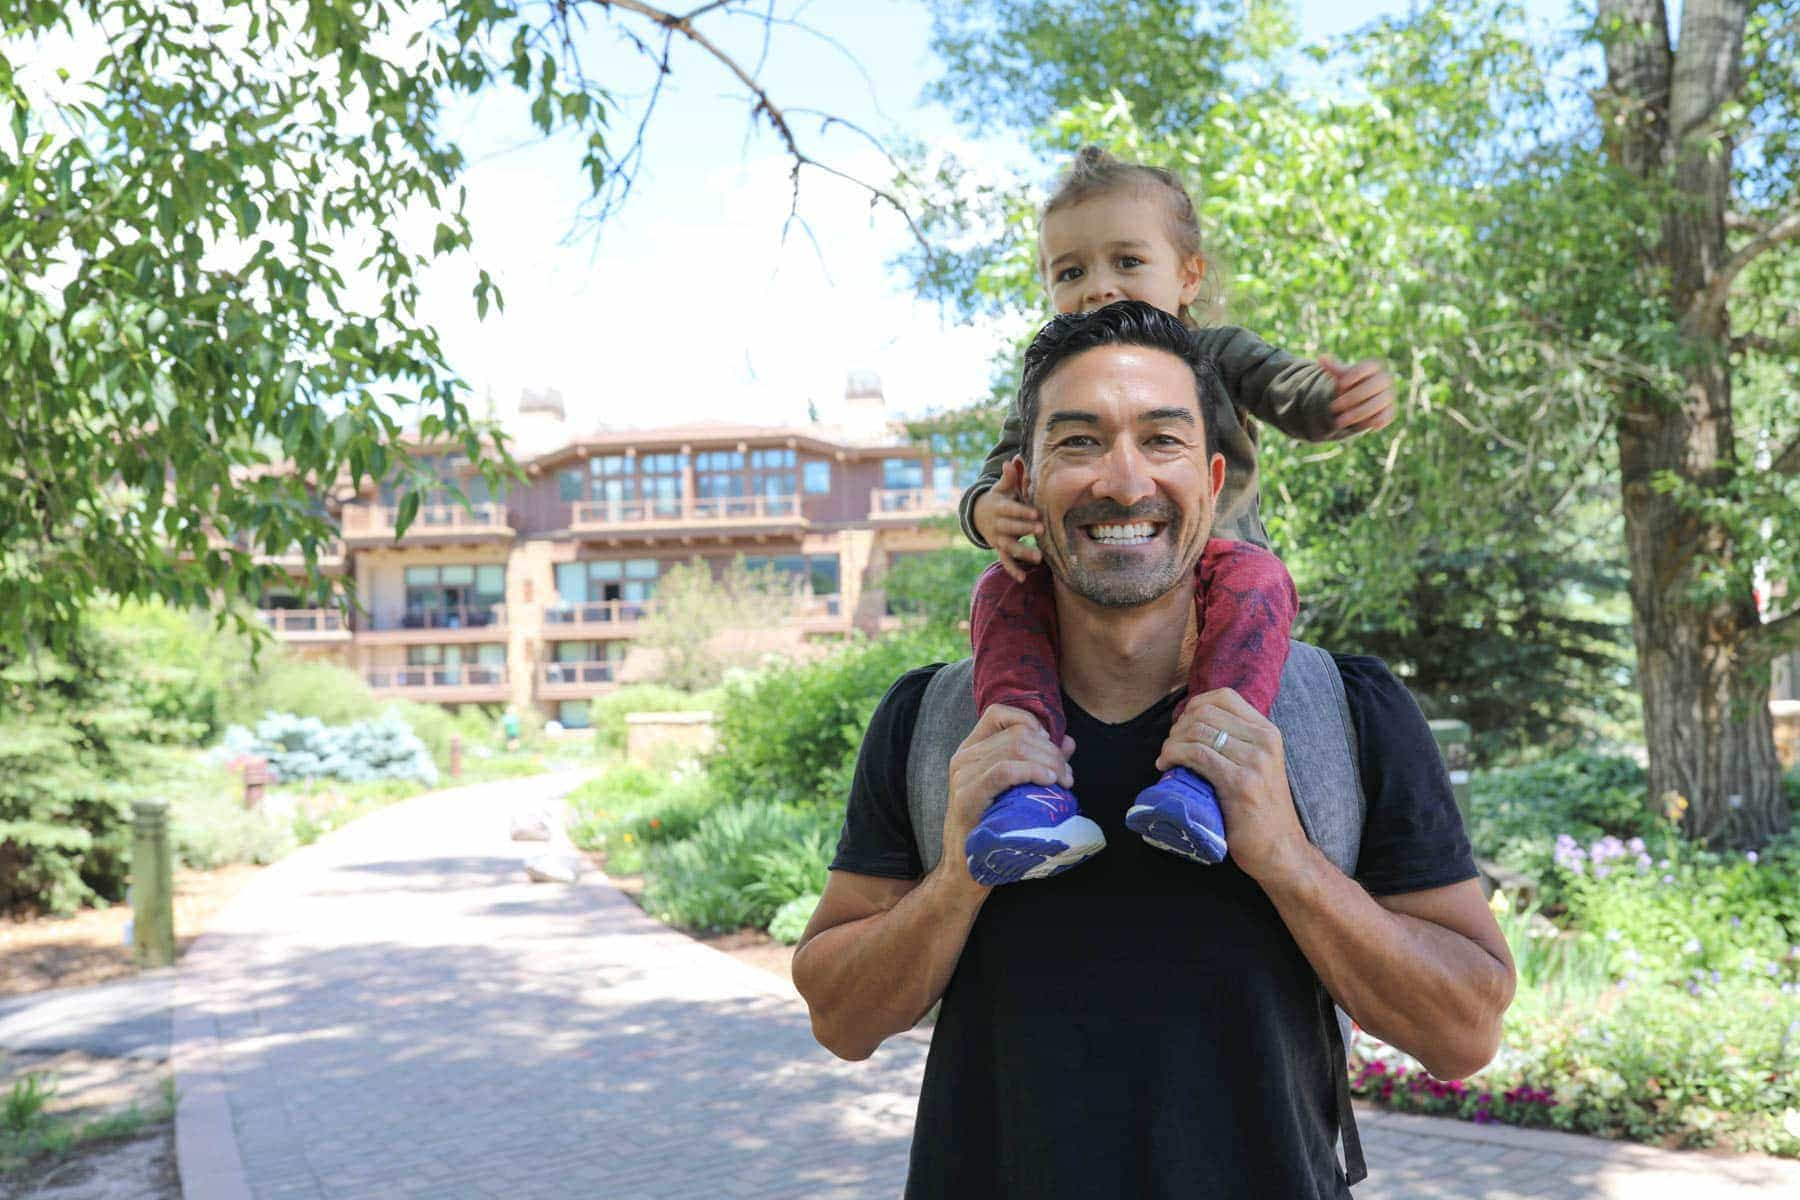 Dad and a Happy Kid #summer #vailcolorado #vacation #citygirlgonemom